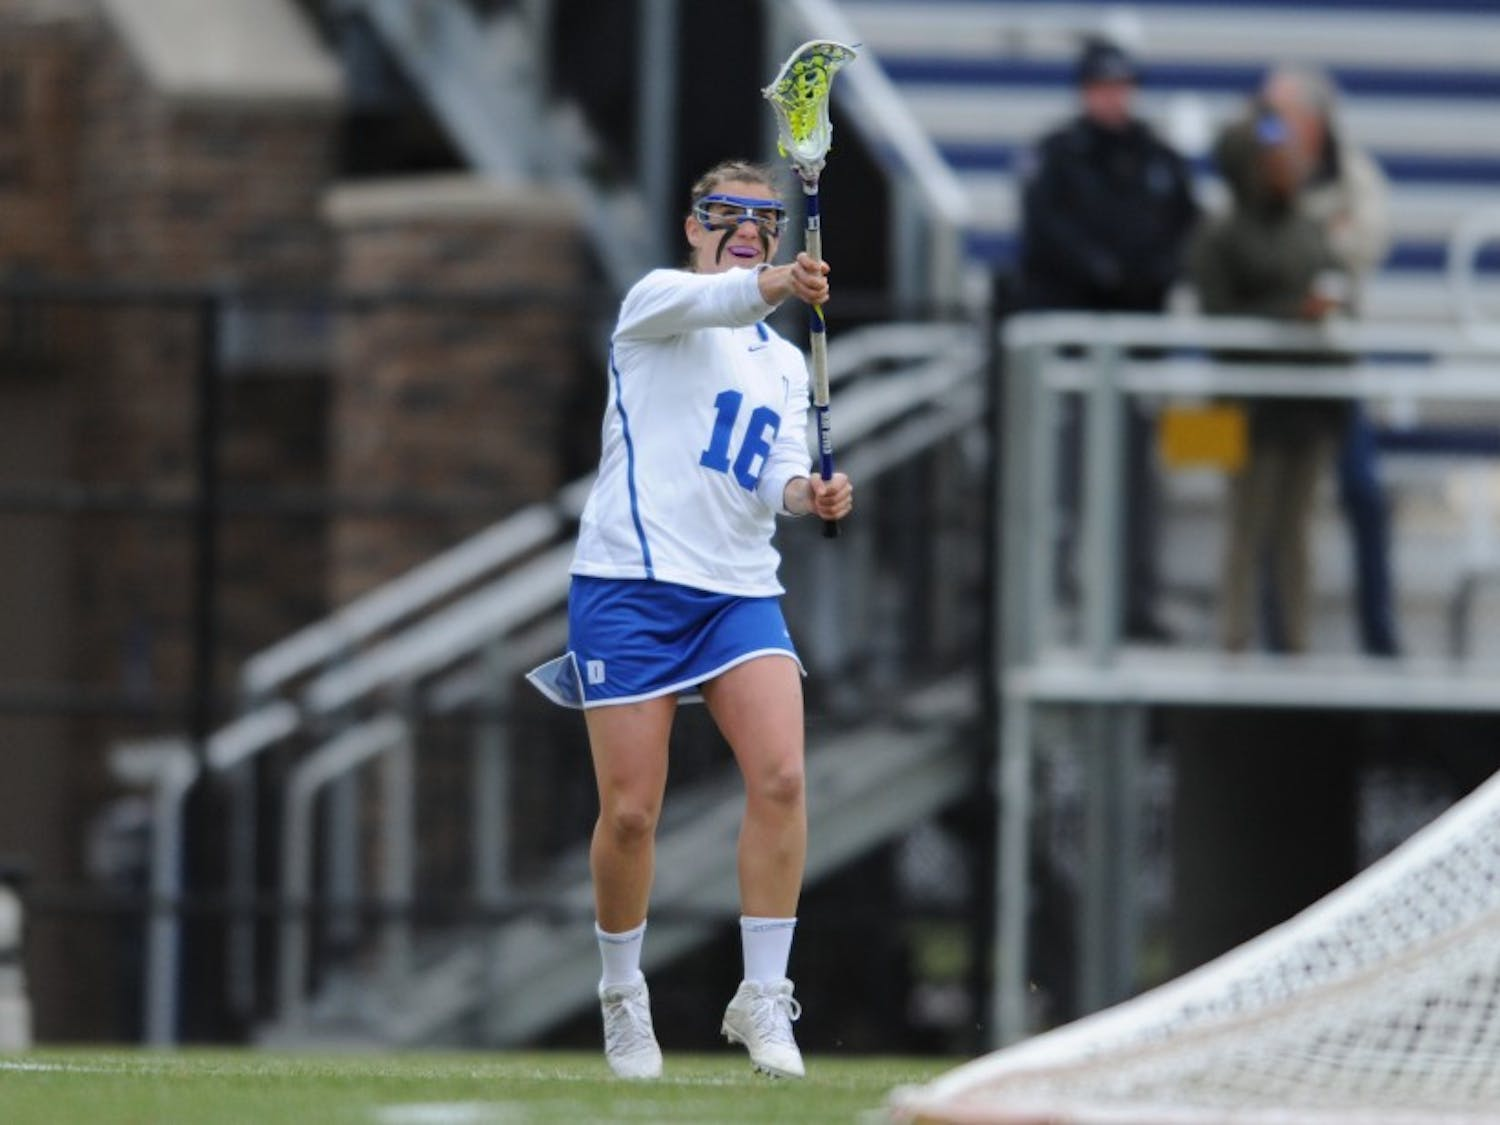 Senior Emma Lazaroff notched a career high-tying two assists in last weekend's win against Villanova and will try to help develop more offensive consistency Saturday against the Cavaliers.